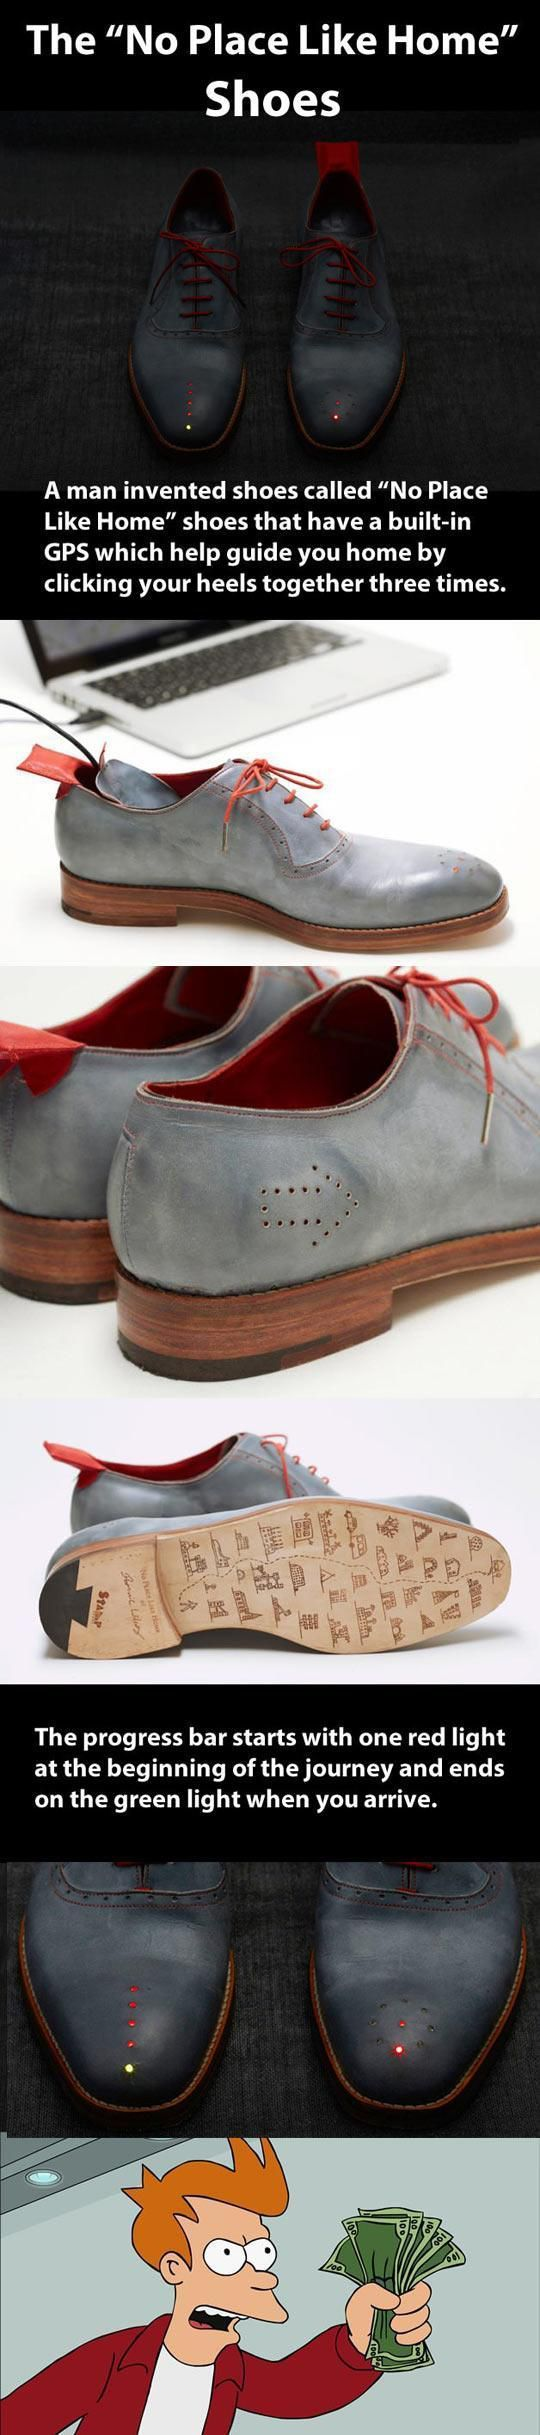 Oh And Cool Pics About Clever Shoes Also Photos